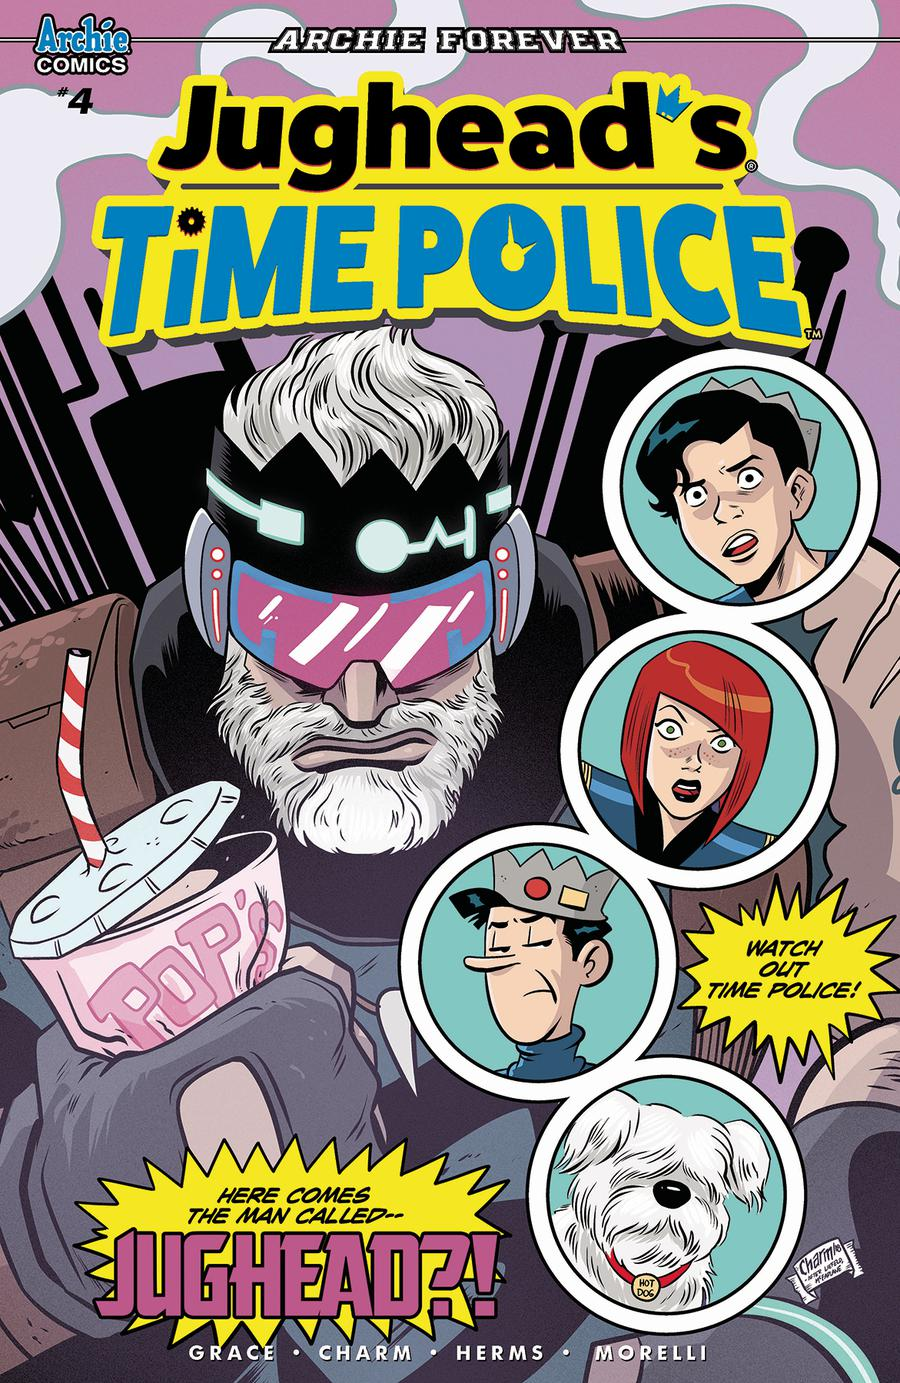 Jugheads Time Police Vol 2 #4 Cover A Regular Derek Charm Cover